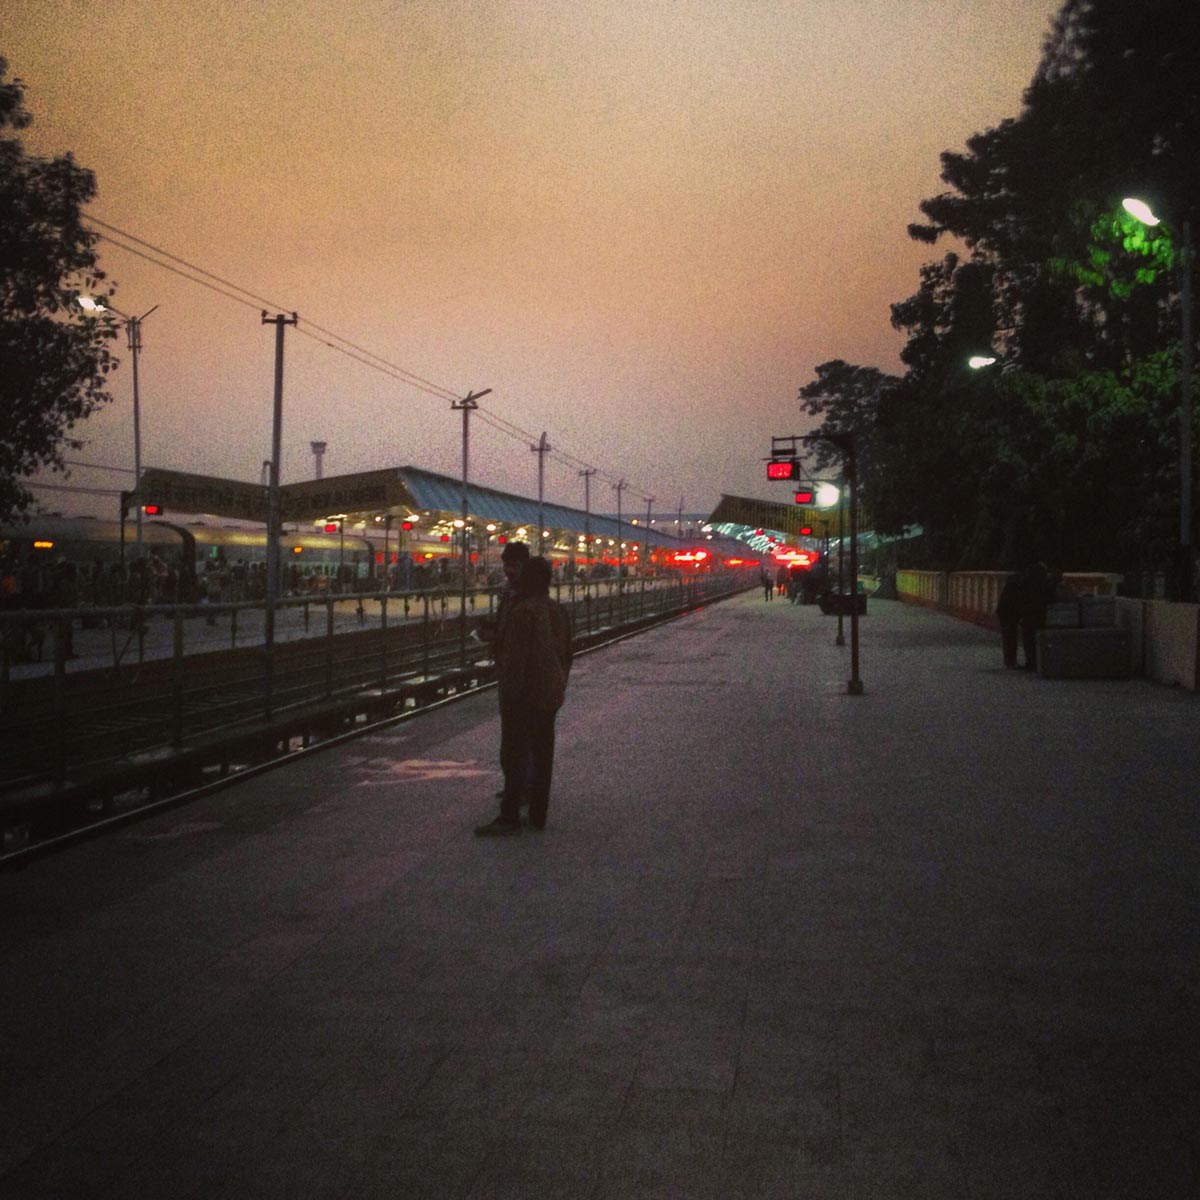 Sunset, New Jalpaiguri Railway Station, India